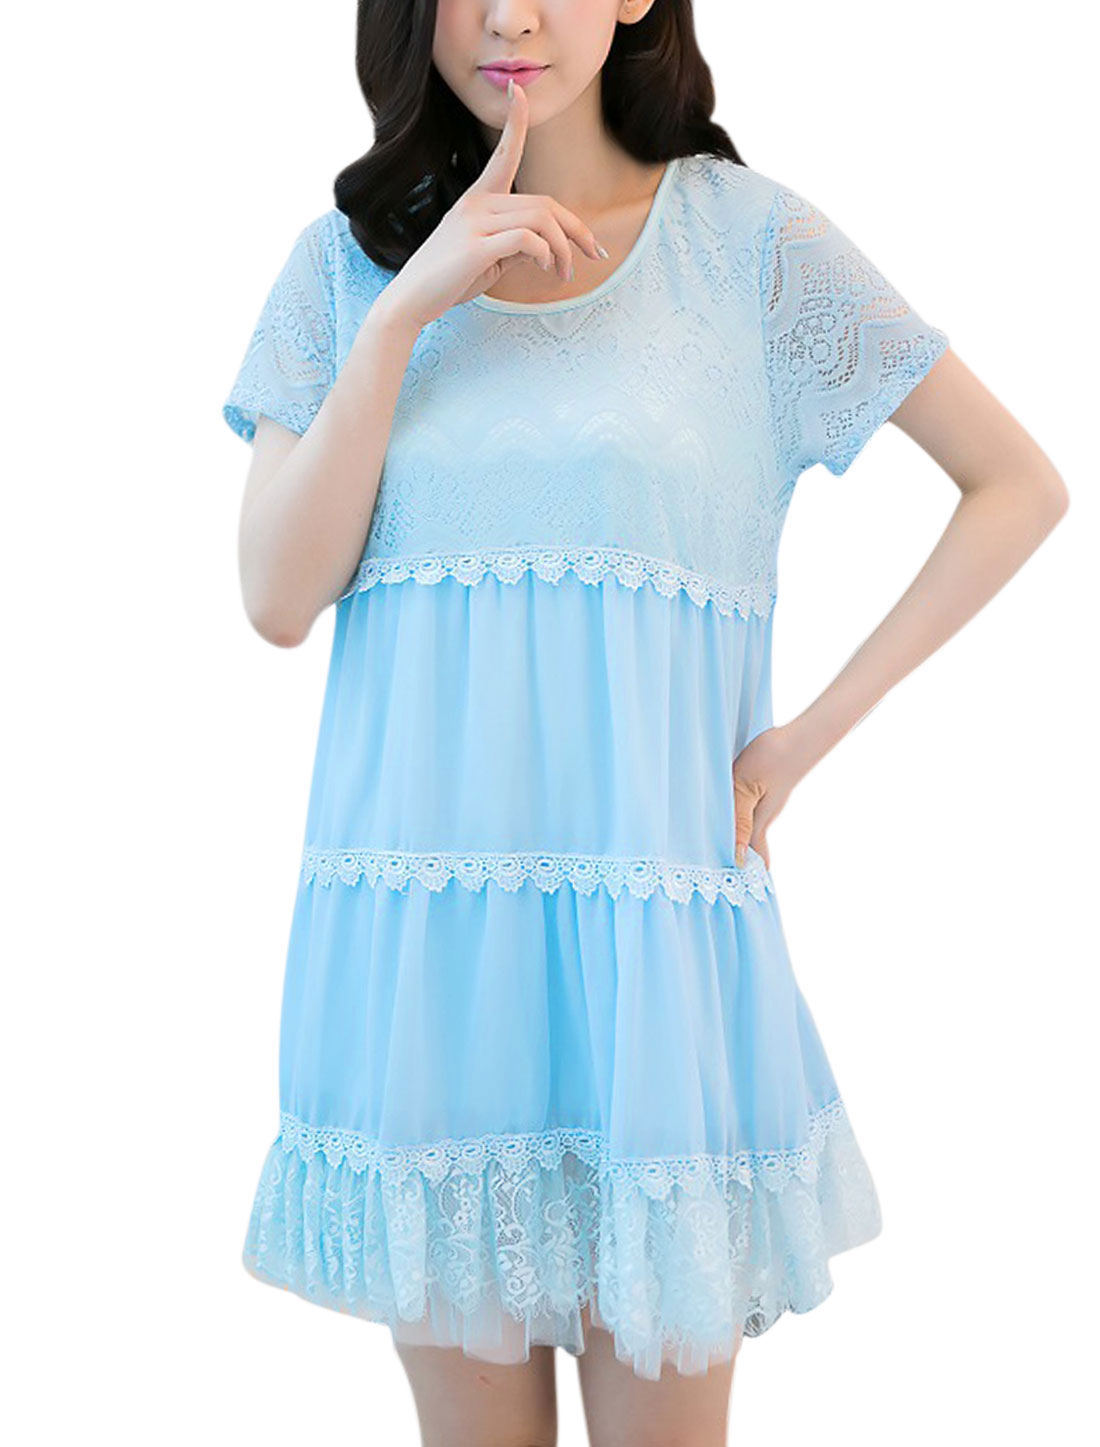 Lady Sweet Short Sleeve Lace Splice Crochet Detail Chiffon Dress Baby Blue S